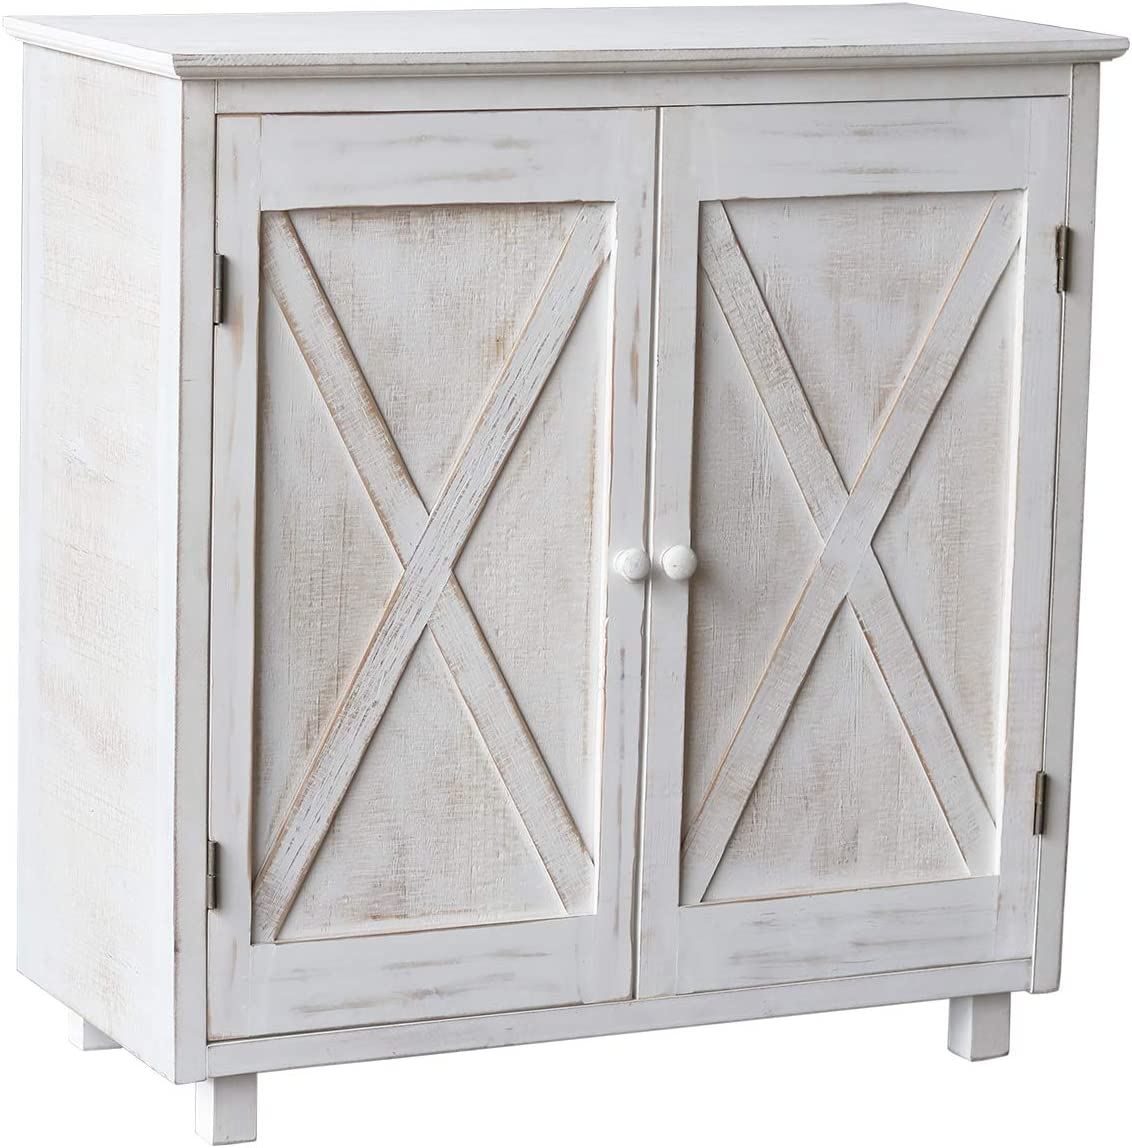 Farmhouse Barn Door Accent Wood Storage Cabinet, Entryway Bar Storage Table, Country Style Furniture, Whitewashed, 32.25